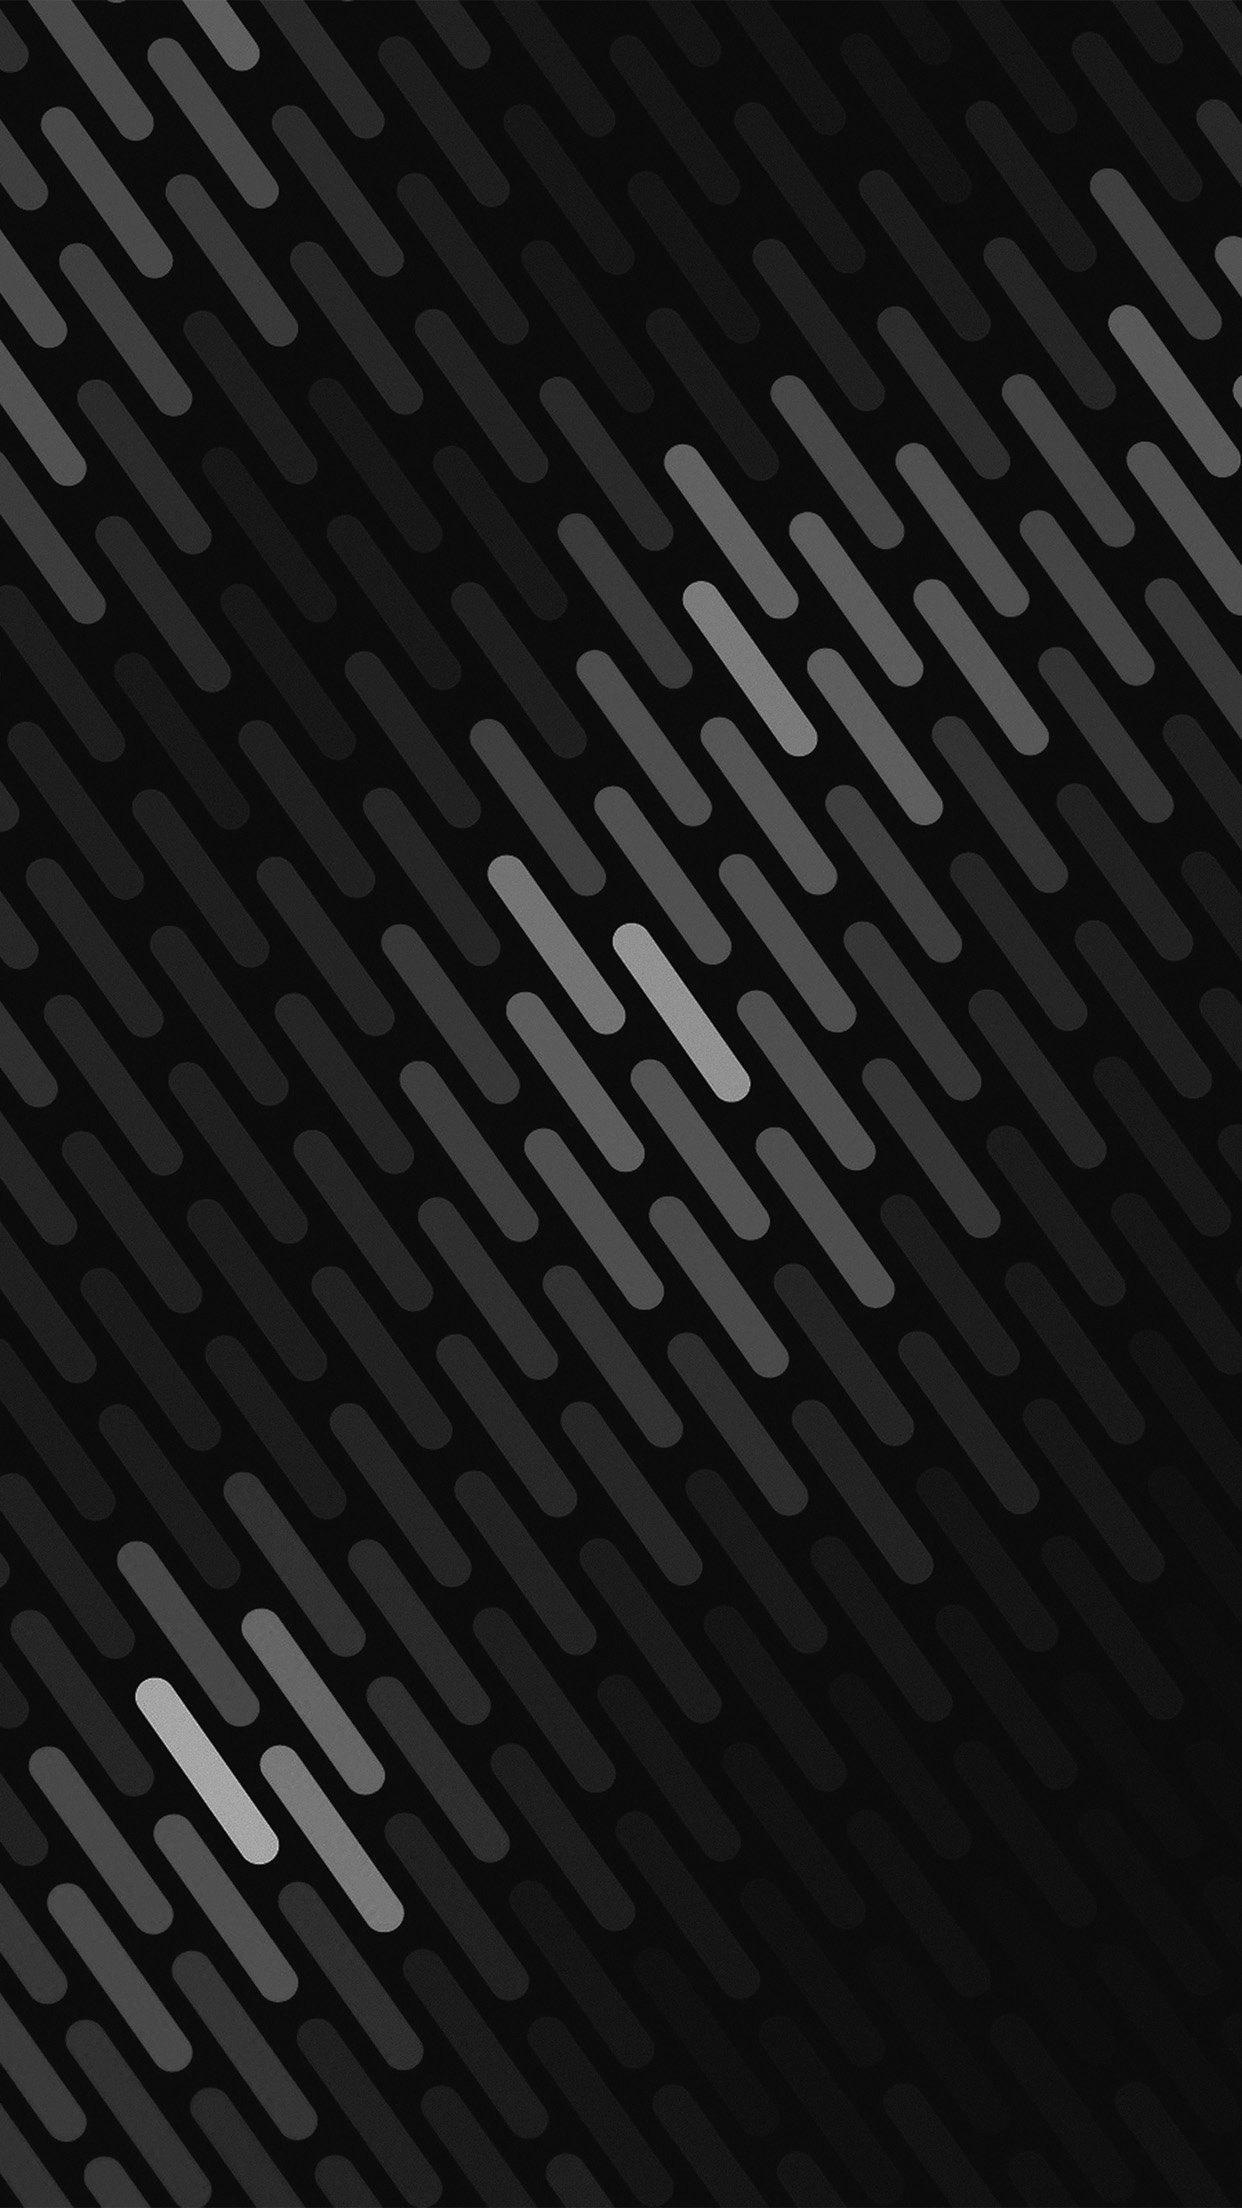 abstract dark bw dots lines pattern android wallpaper android hd wallpapers